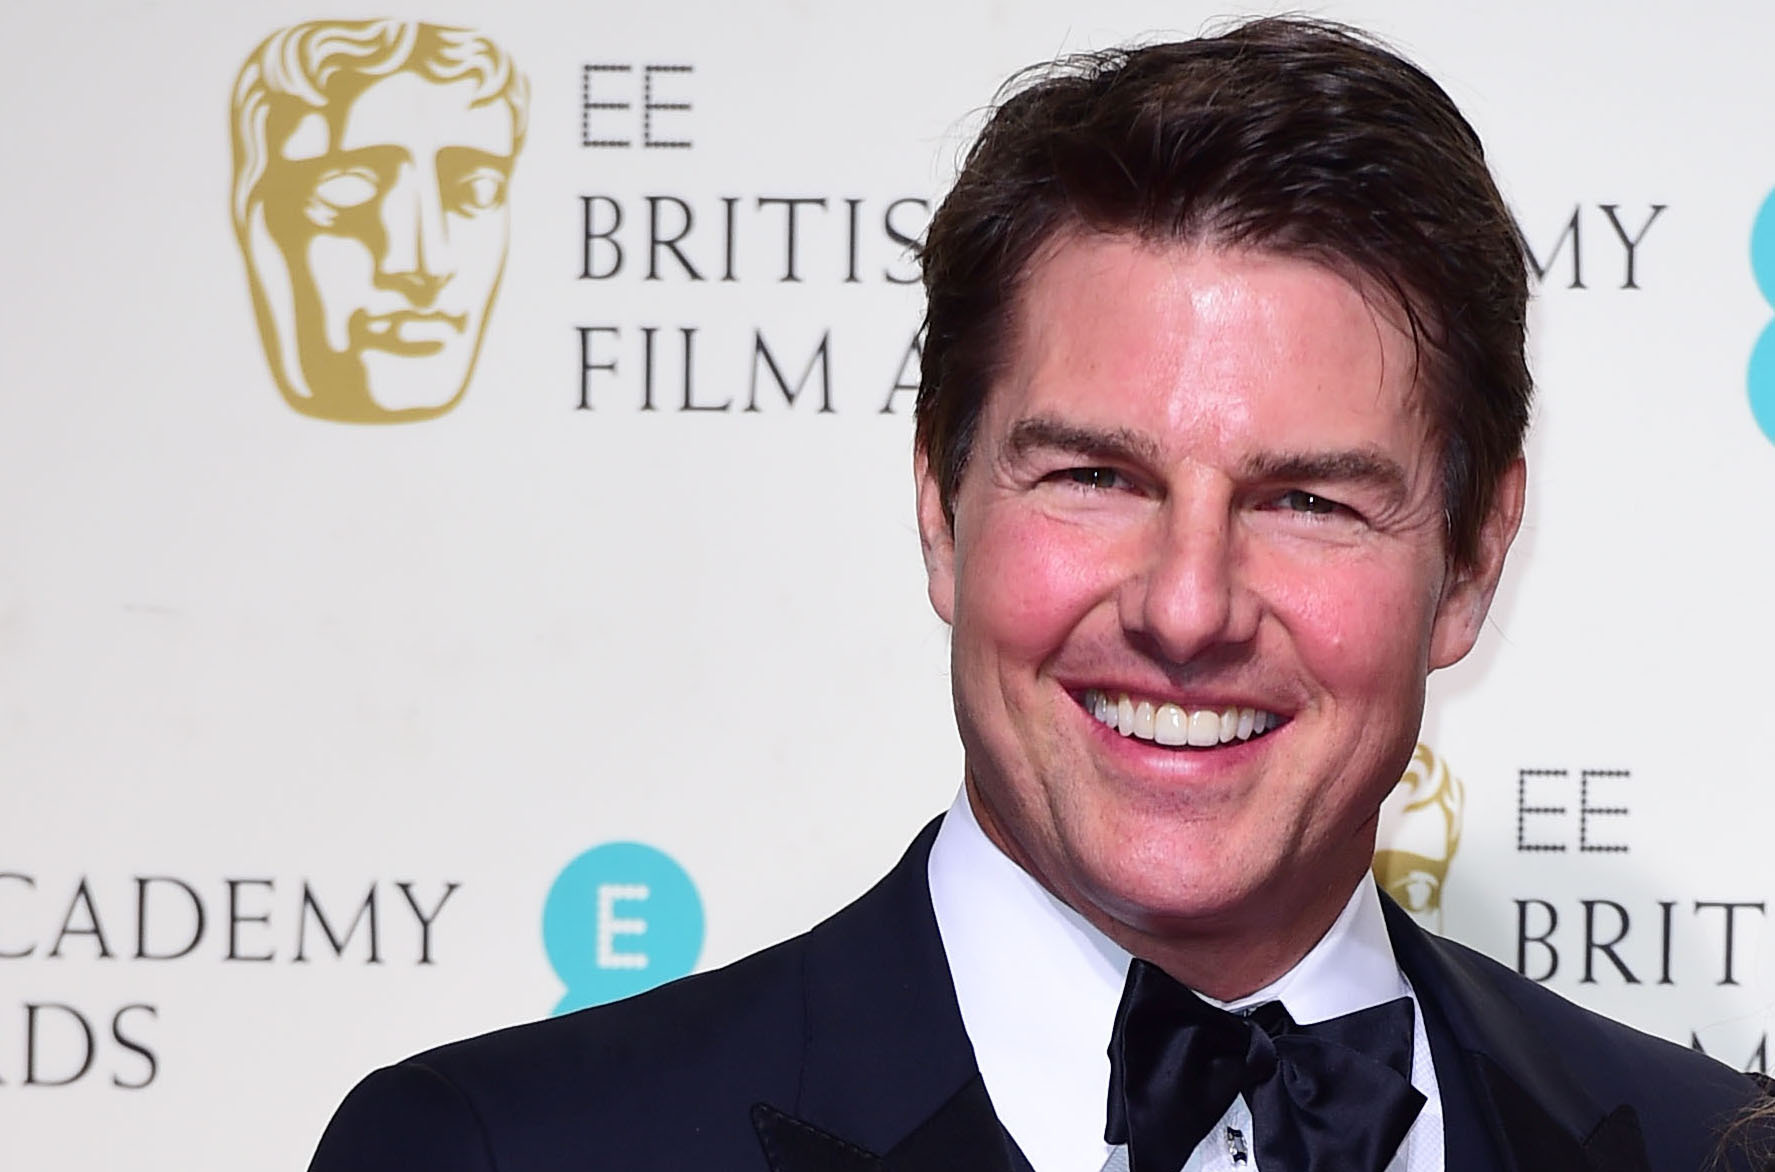 Mission: Impossible 6 production reportedly halted after Tom Cruise injury